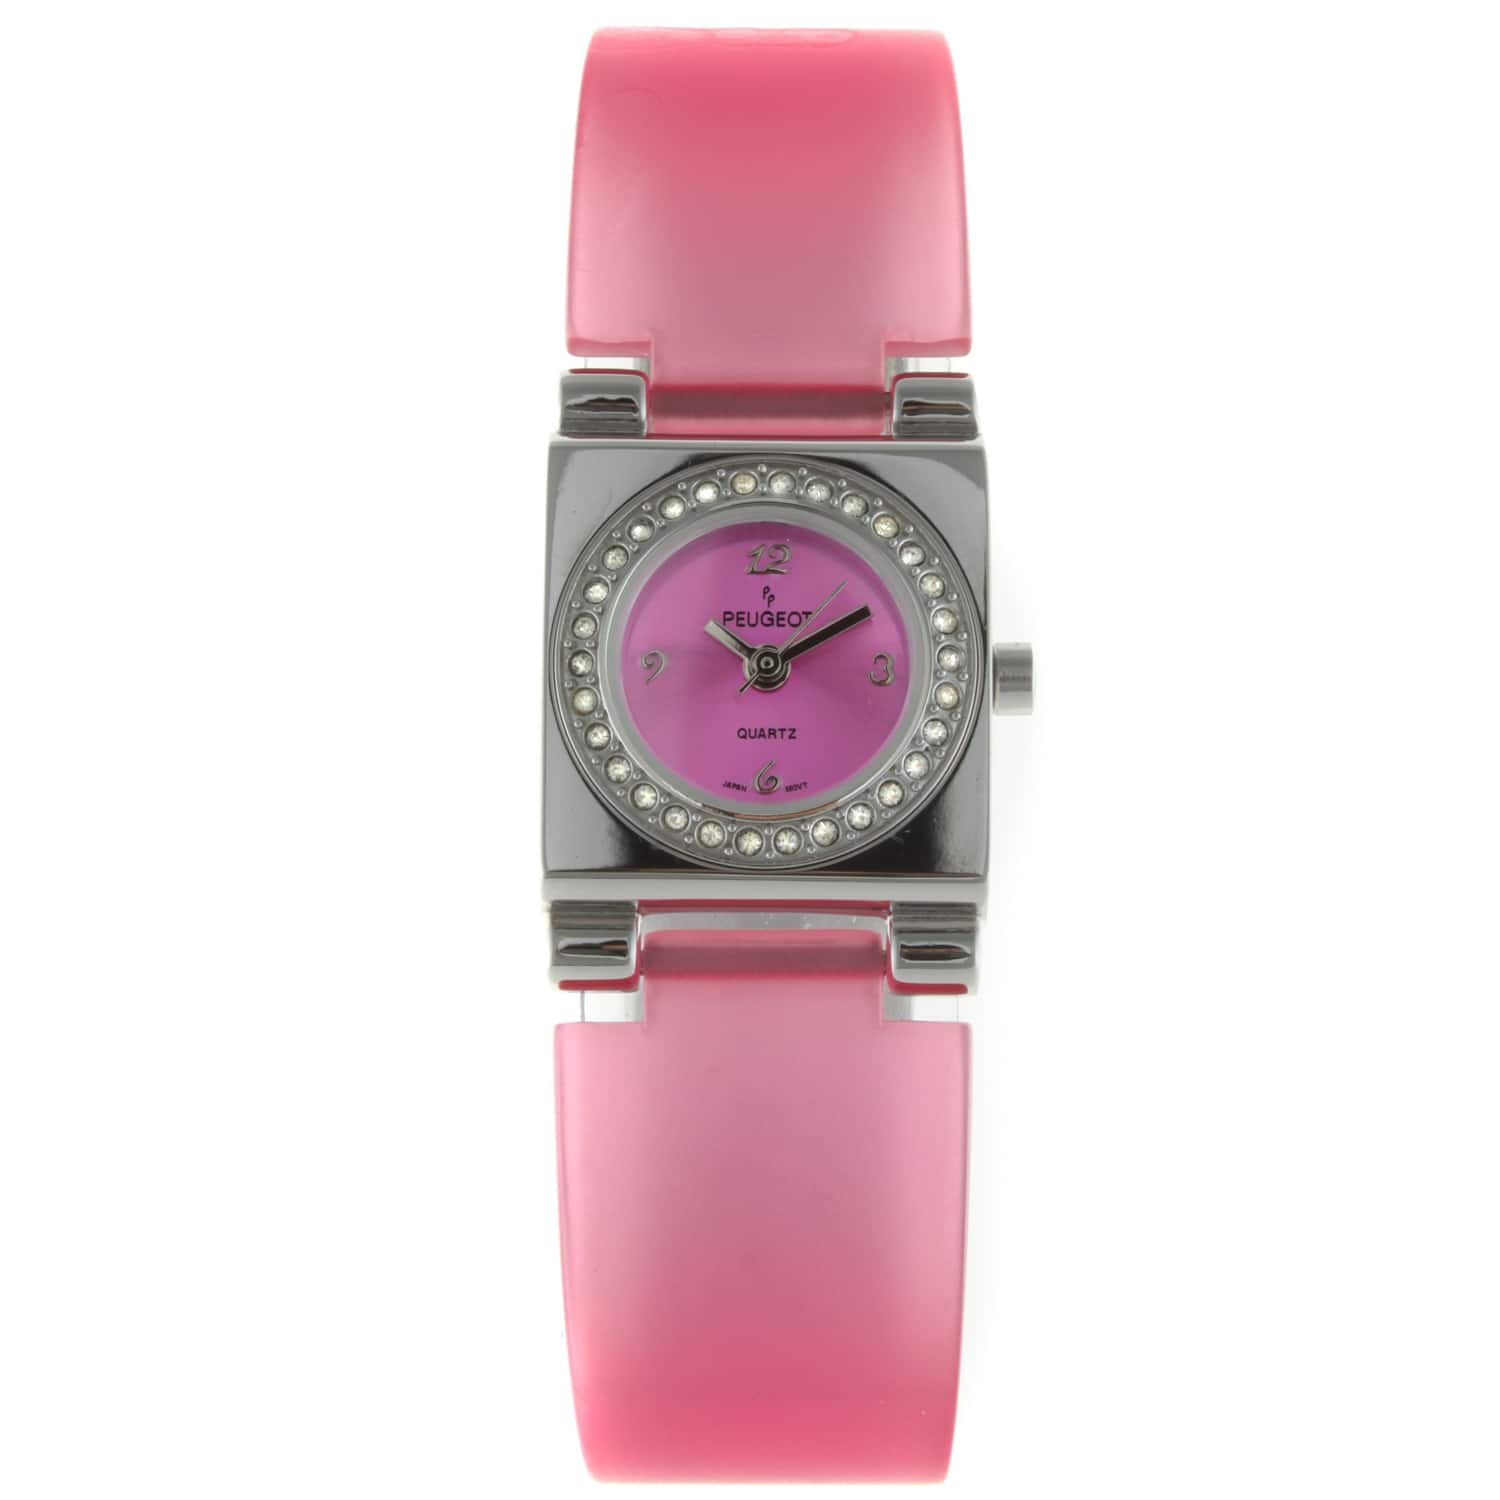 Peugeot Women's Pink Lucite Crystal Accented Watch https://ak1.ostkcdn.com/images/products/7194579/80/575/Peugeot-Womens-Pink-Lucite-Crystal-Accented-Watch-P14681321.jpg?impolicy=medium